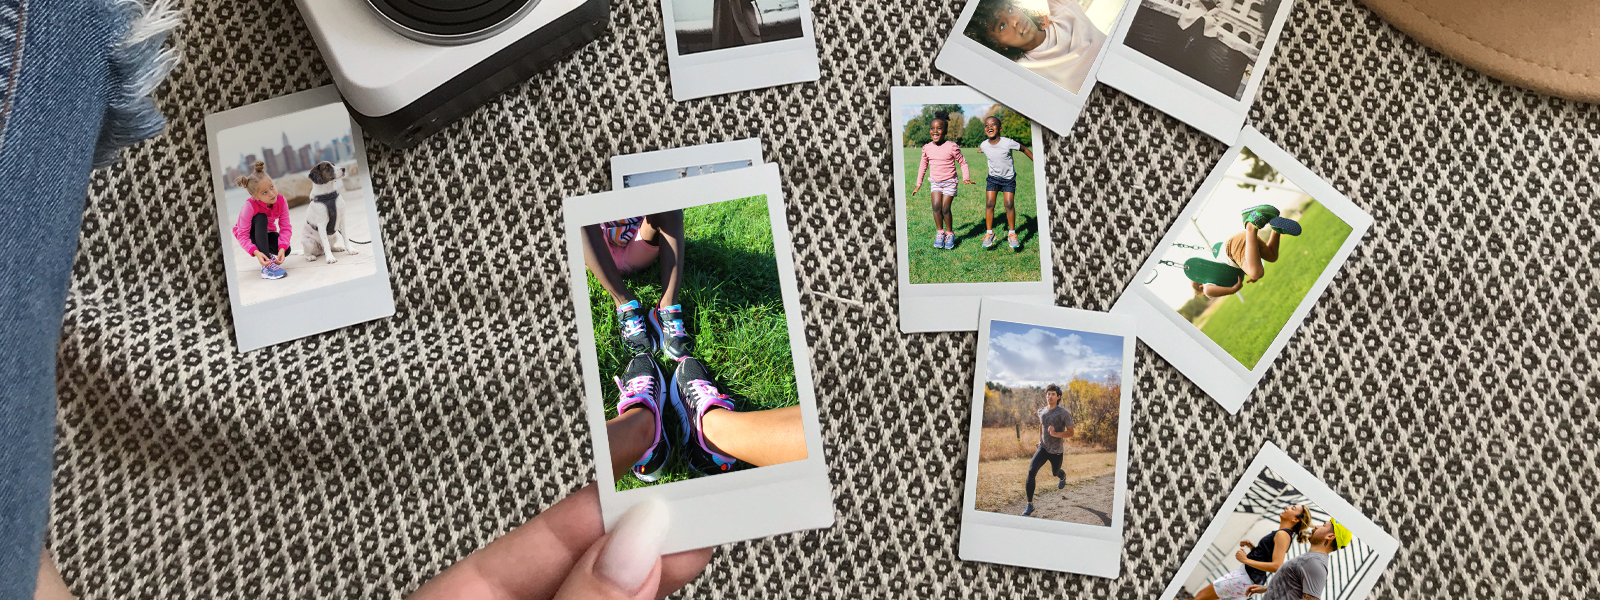 A collection of Polaroids showing family at play and excercising.